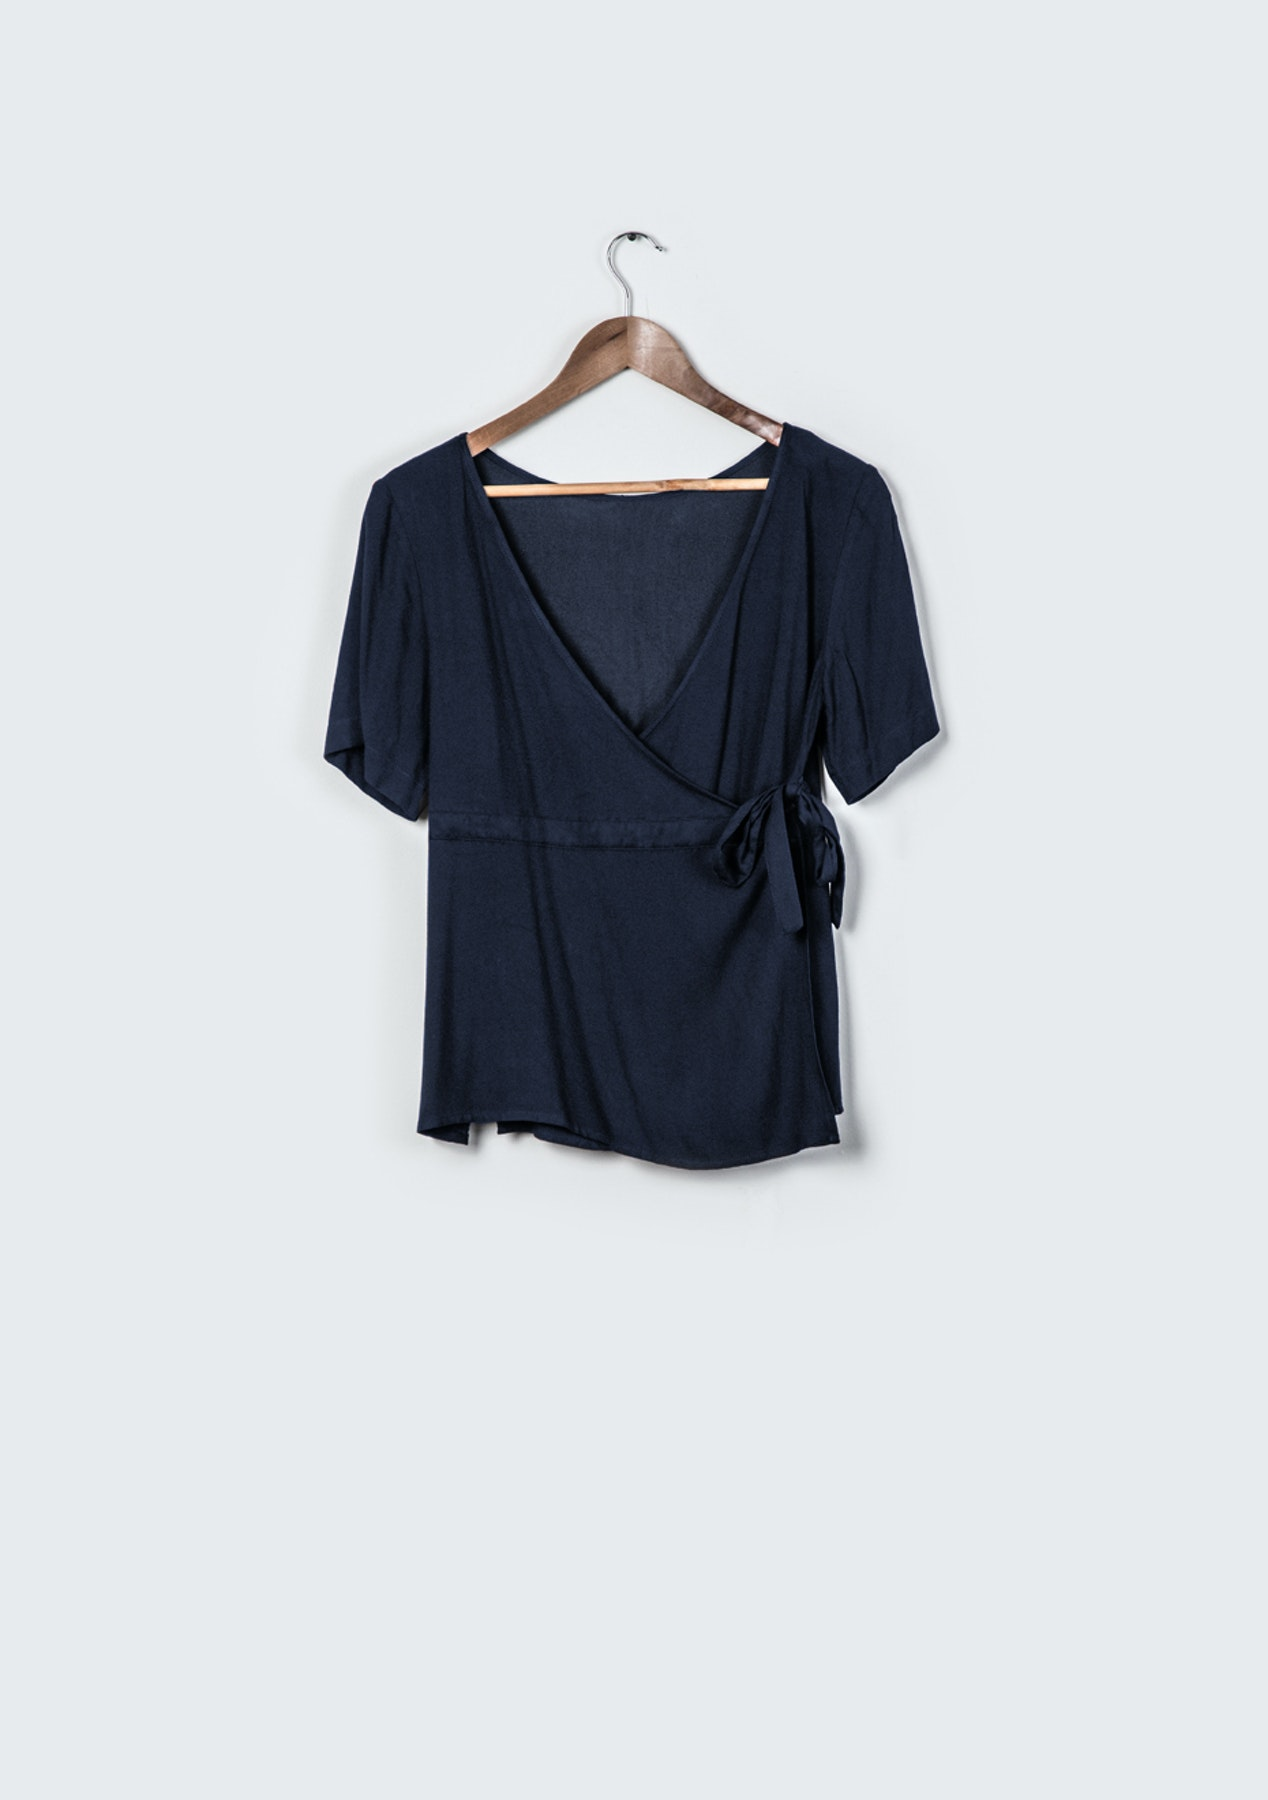 92717592ca6e49 Thing Thing Womens - Smoky Top - Navy - Thing Thing Womens - Onceit